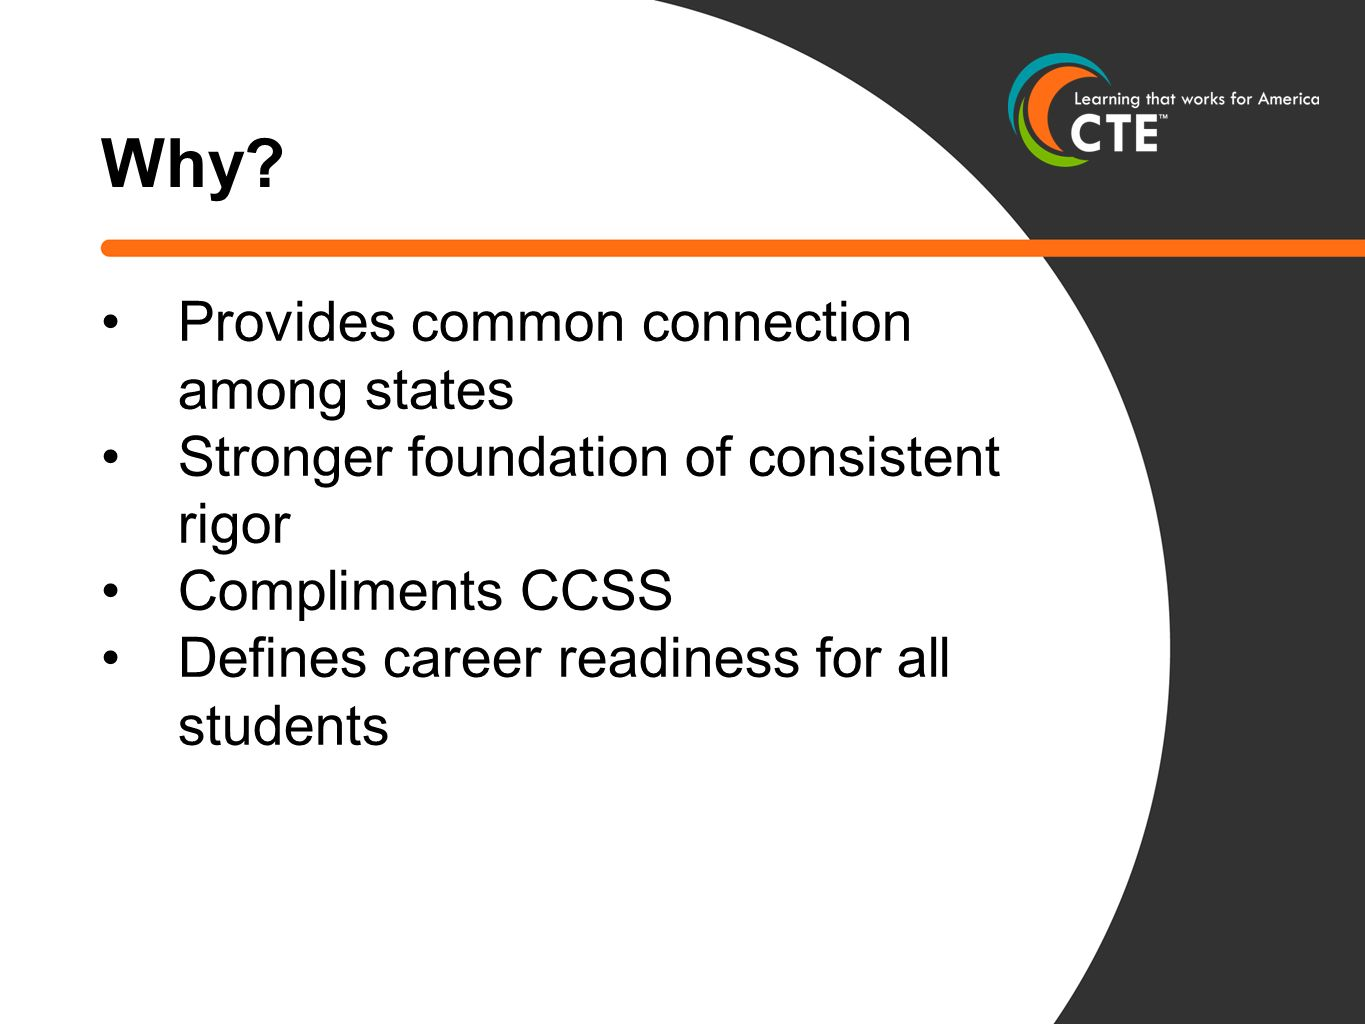 Why? Provides common connection among states Stronger foundation of consistent rigor Compliments CCSS Defines career readiness for all students